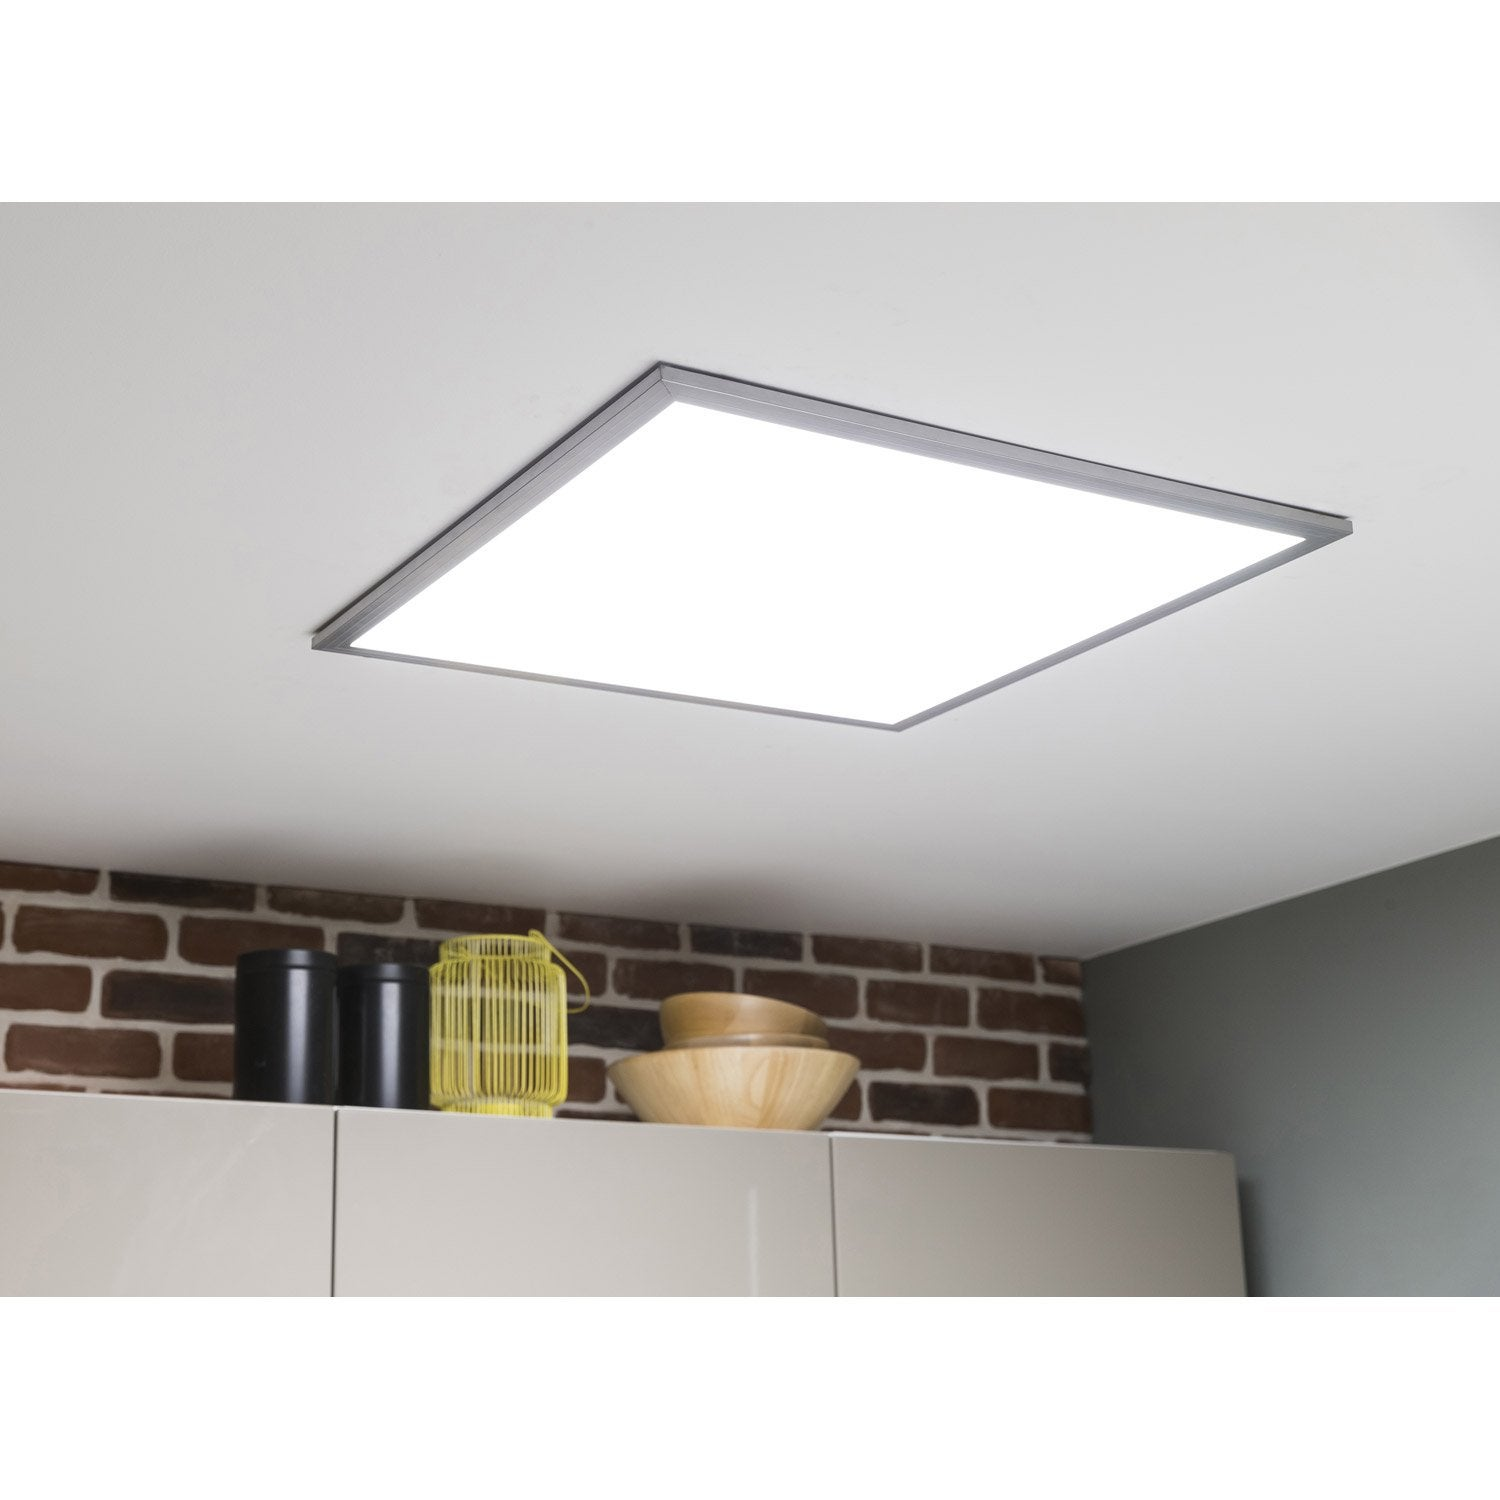 panneau led led 1 x 36 w led integree leroy merlin With carrelage adhesif salle de bain avec downlight philips led